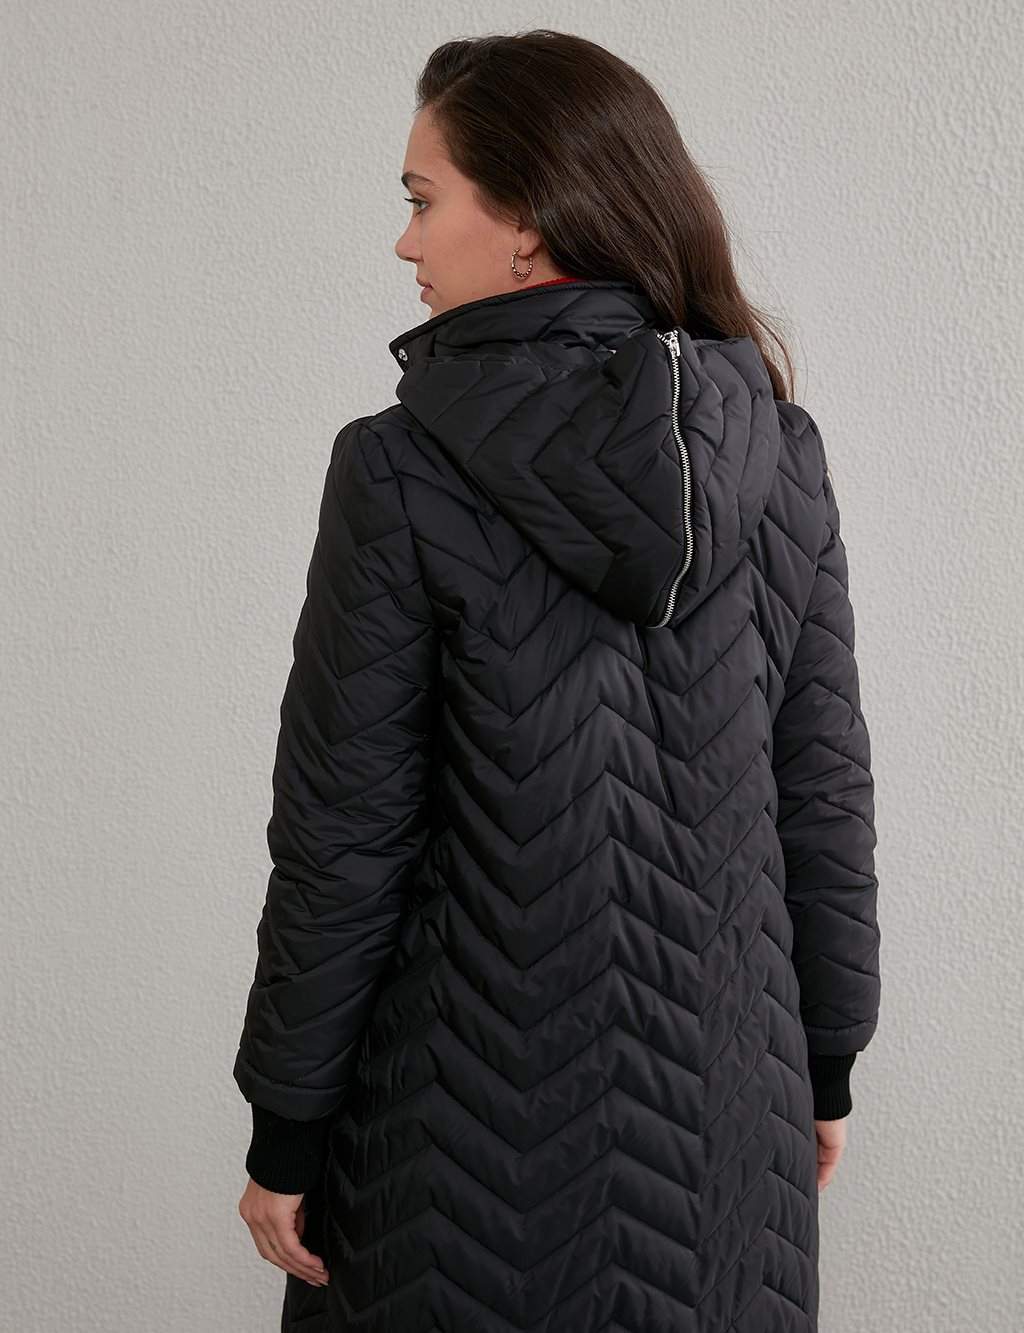 Zigzag Patterned Quilted Anorak A20 27100 Black